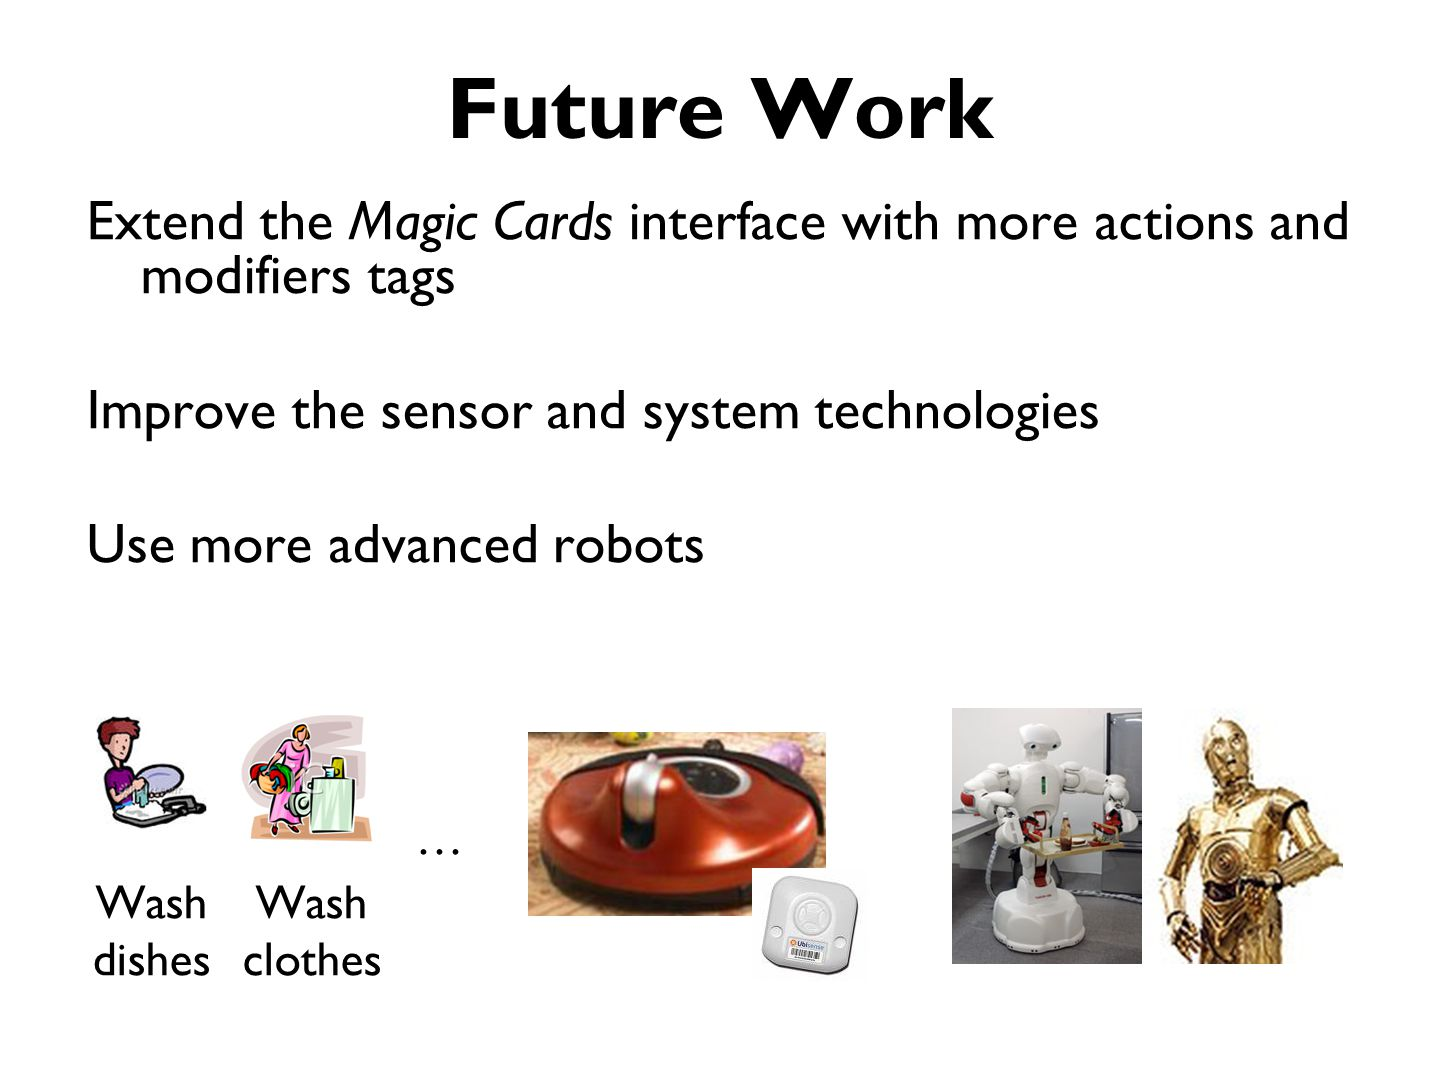 Future Work Extend the Magic Cards interface with more actions and modifiers tags Improve the sensor and system technologies Use more advanced robots Wash dishes Wash clothes …